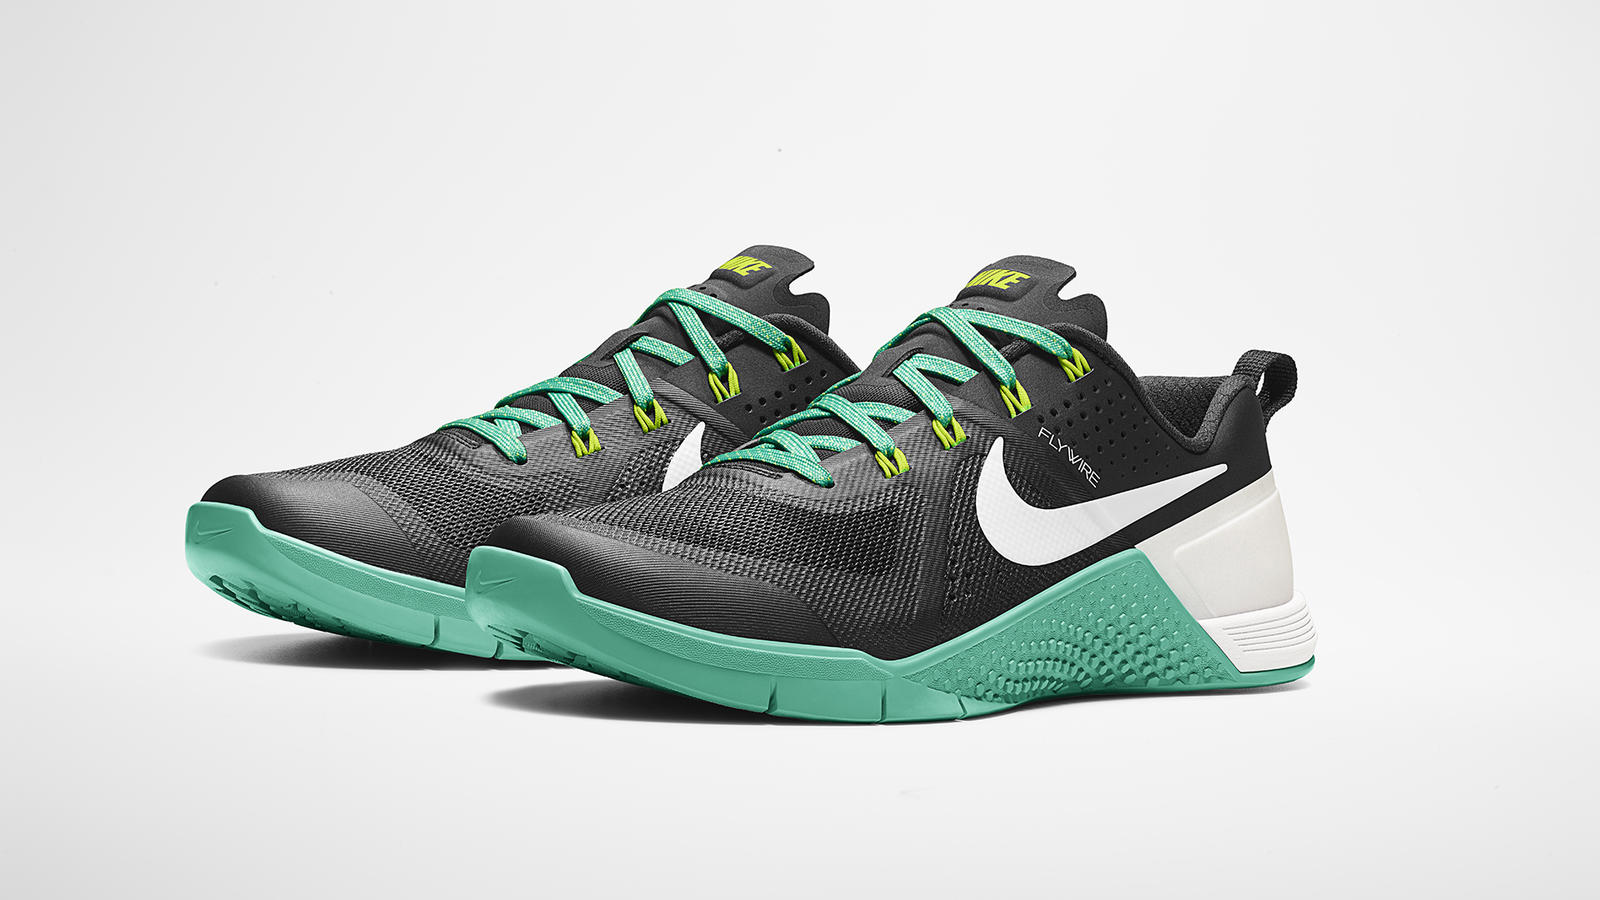 nike shoes picture download 868009